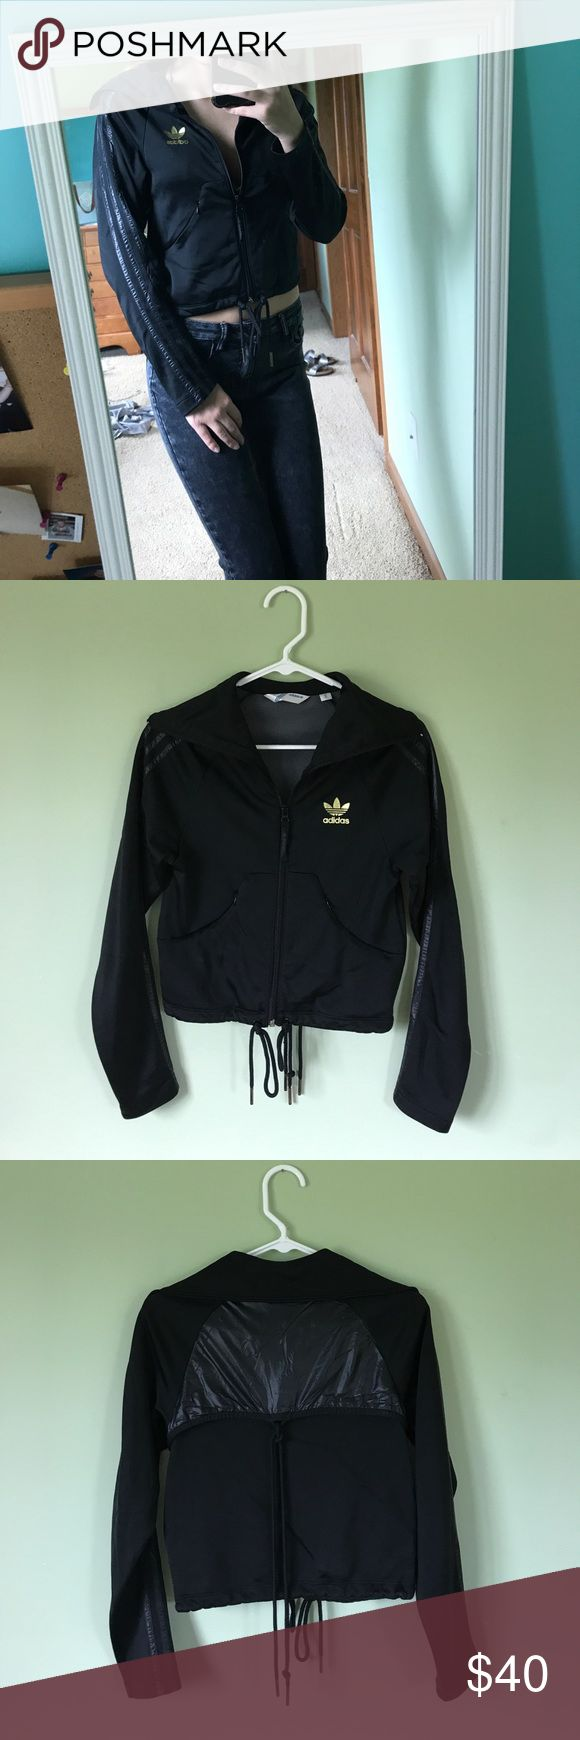 Adidas Zip Up Jacket Slightly cropped adidas zip up jacket. Gold logo, zip pockets, ties for a cinched option around the waist. Like new condition! Make an offer adidas Jackets & Coats